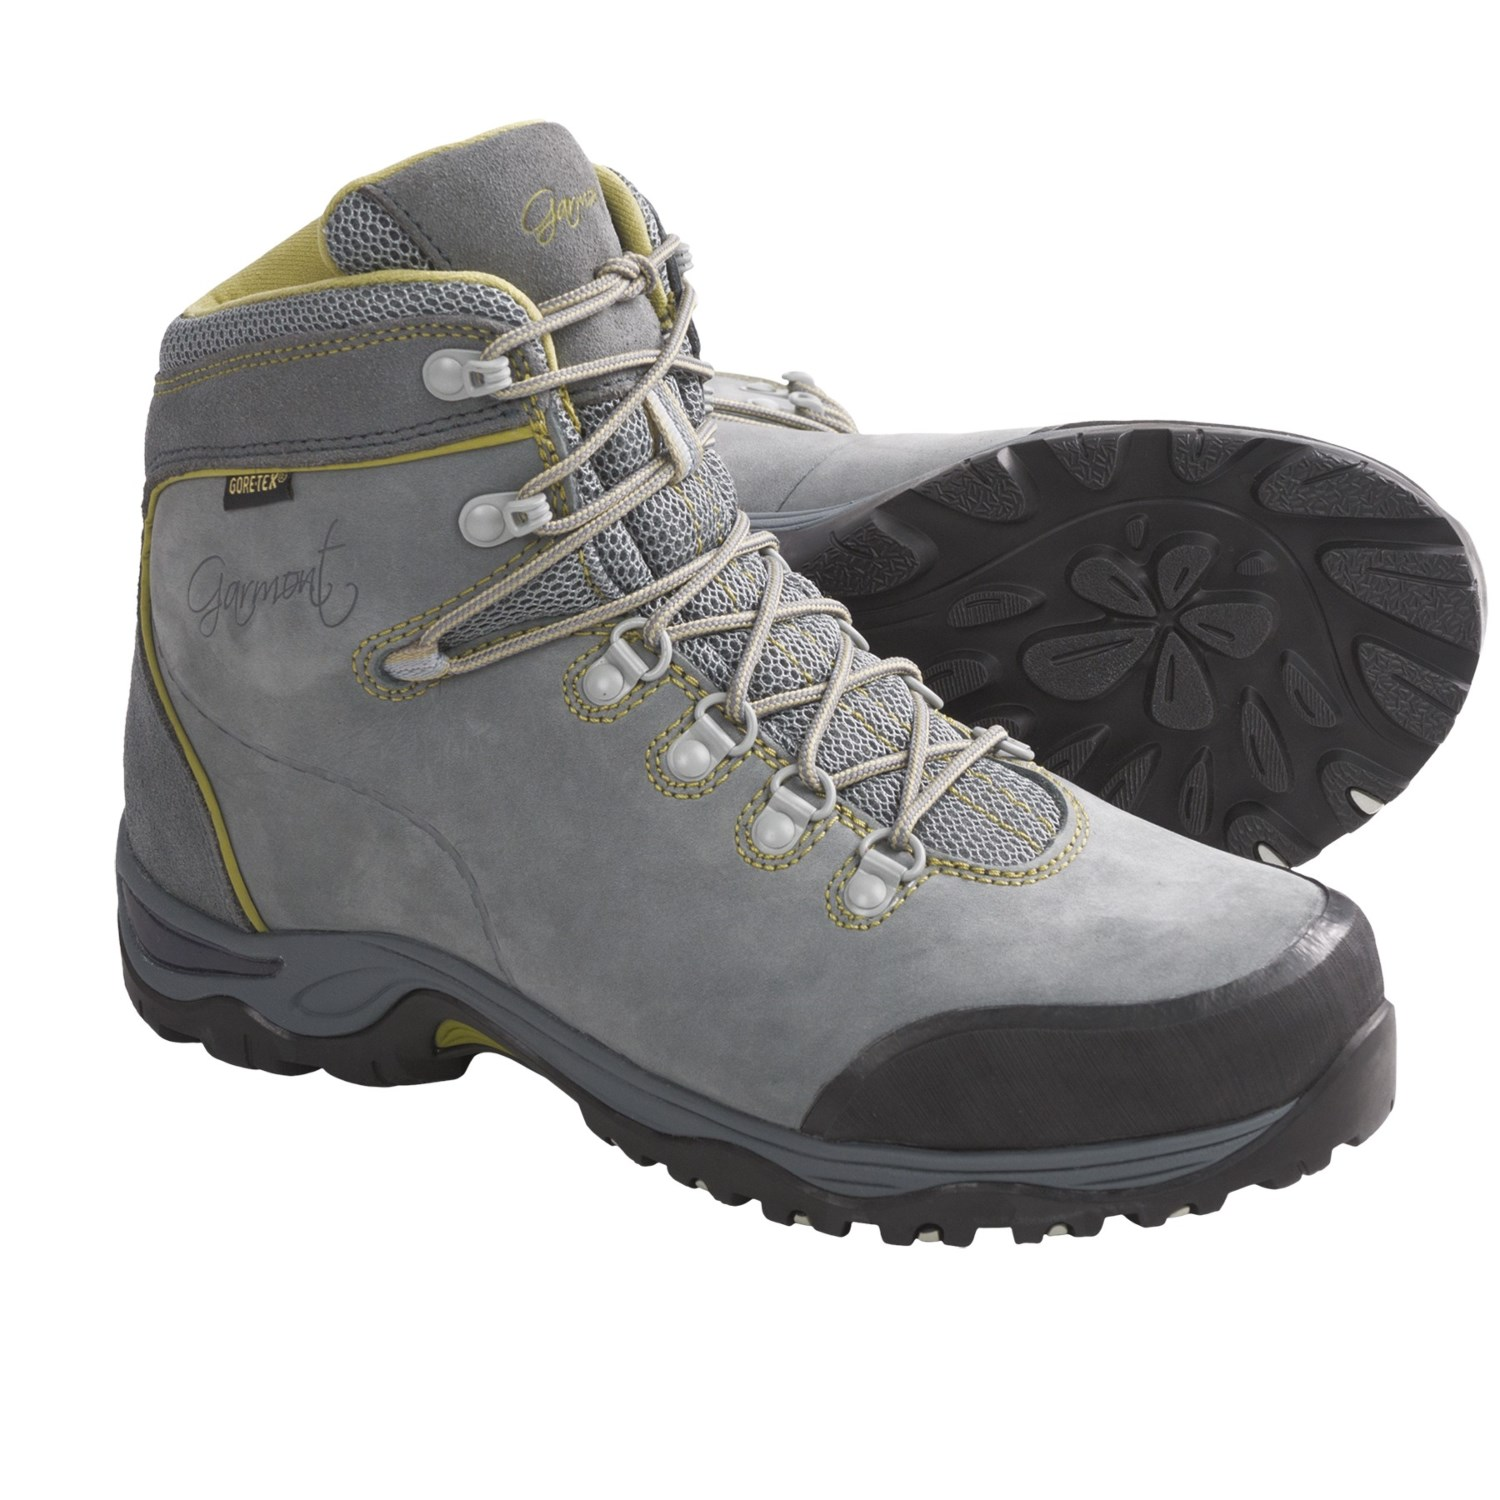 Fantastic Vasque Wasatch Gore-Texu00ae Hiking Boots (For Women) 6656W - Save 27%